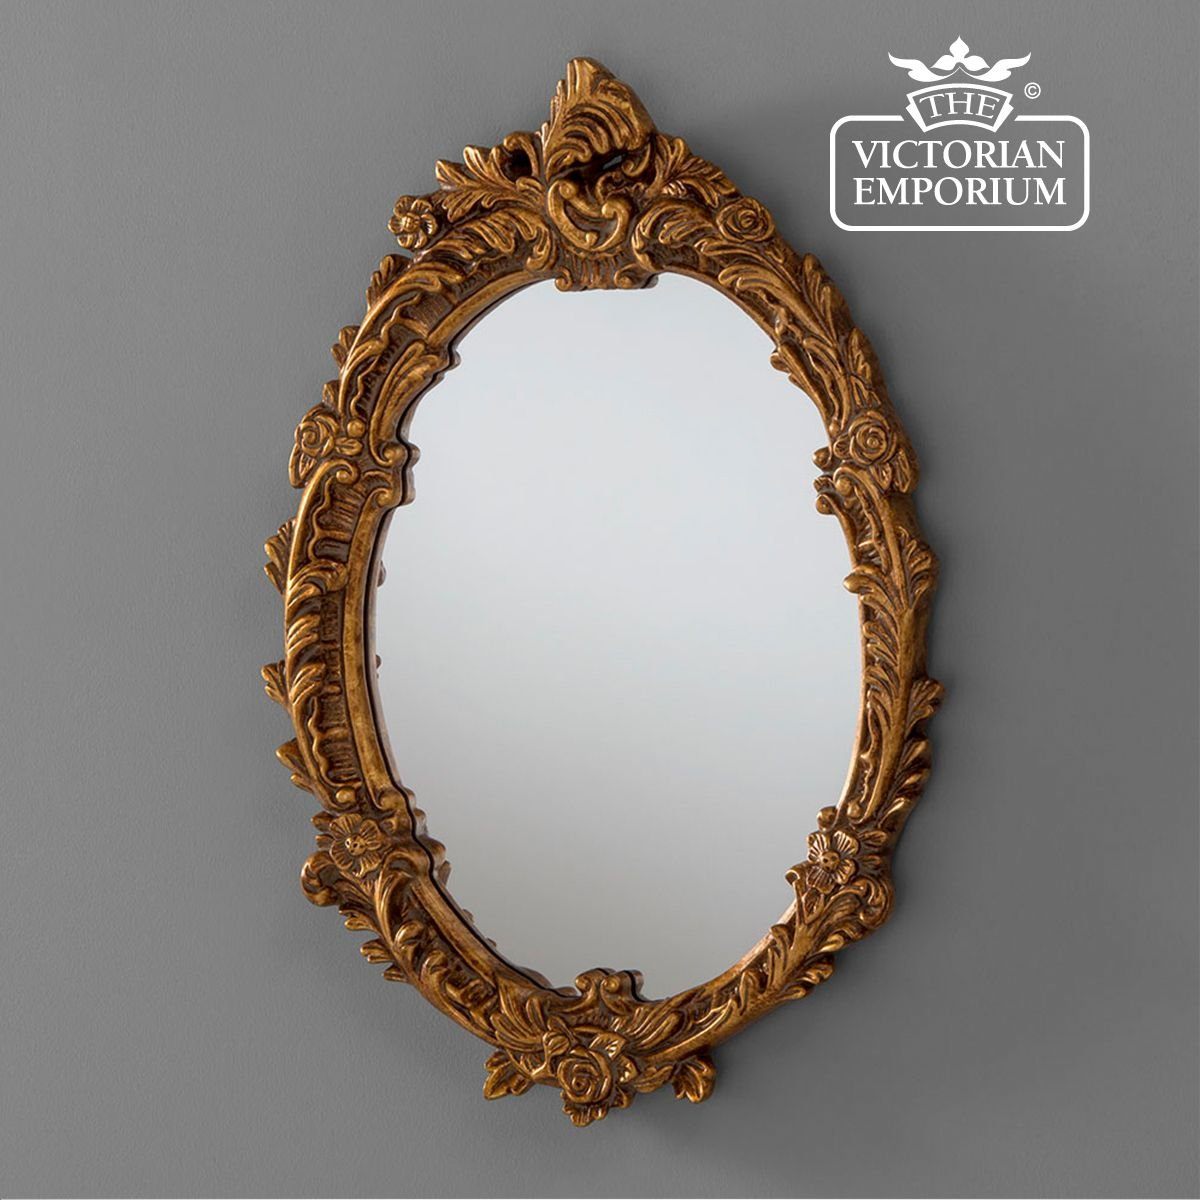 Gold Framed Oval Decorative Mirror 64x46cm